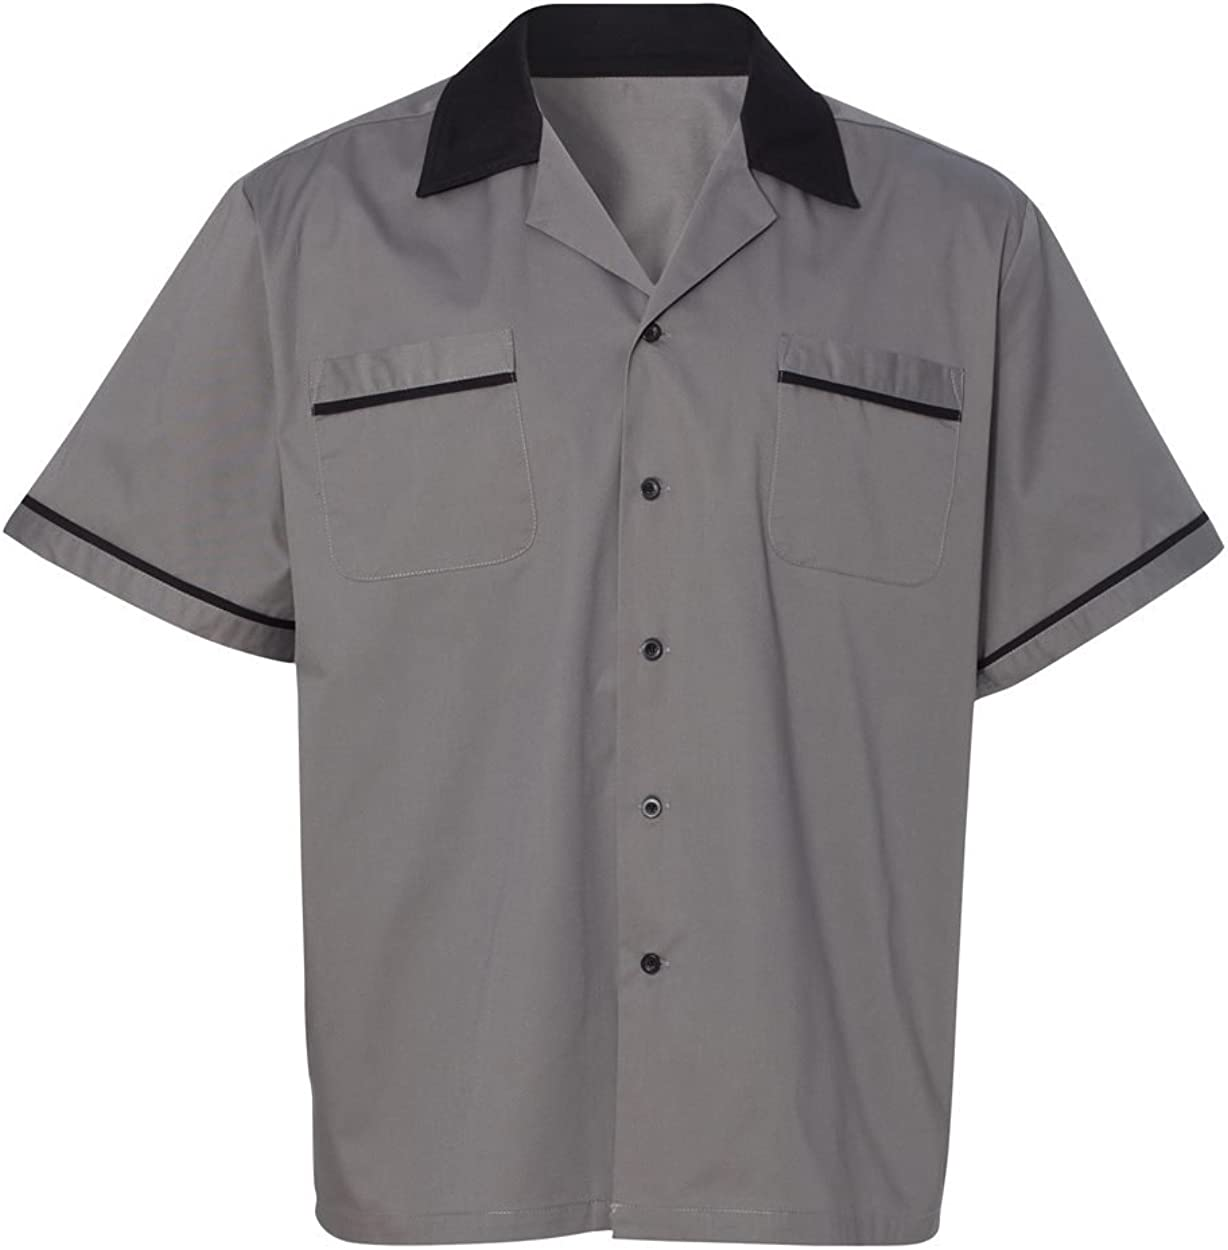 Hilton HP2244 GM Legend Bowling Shirt